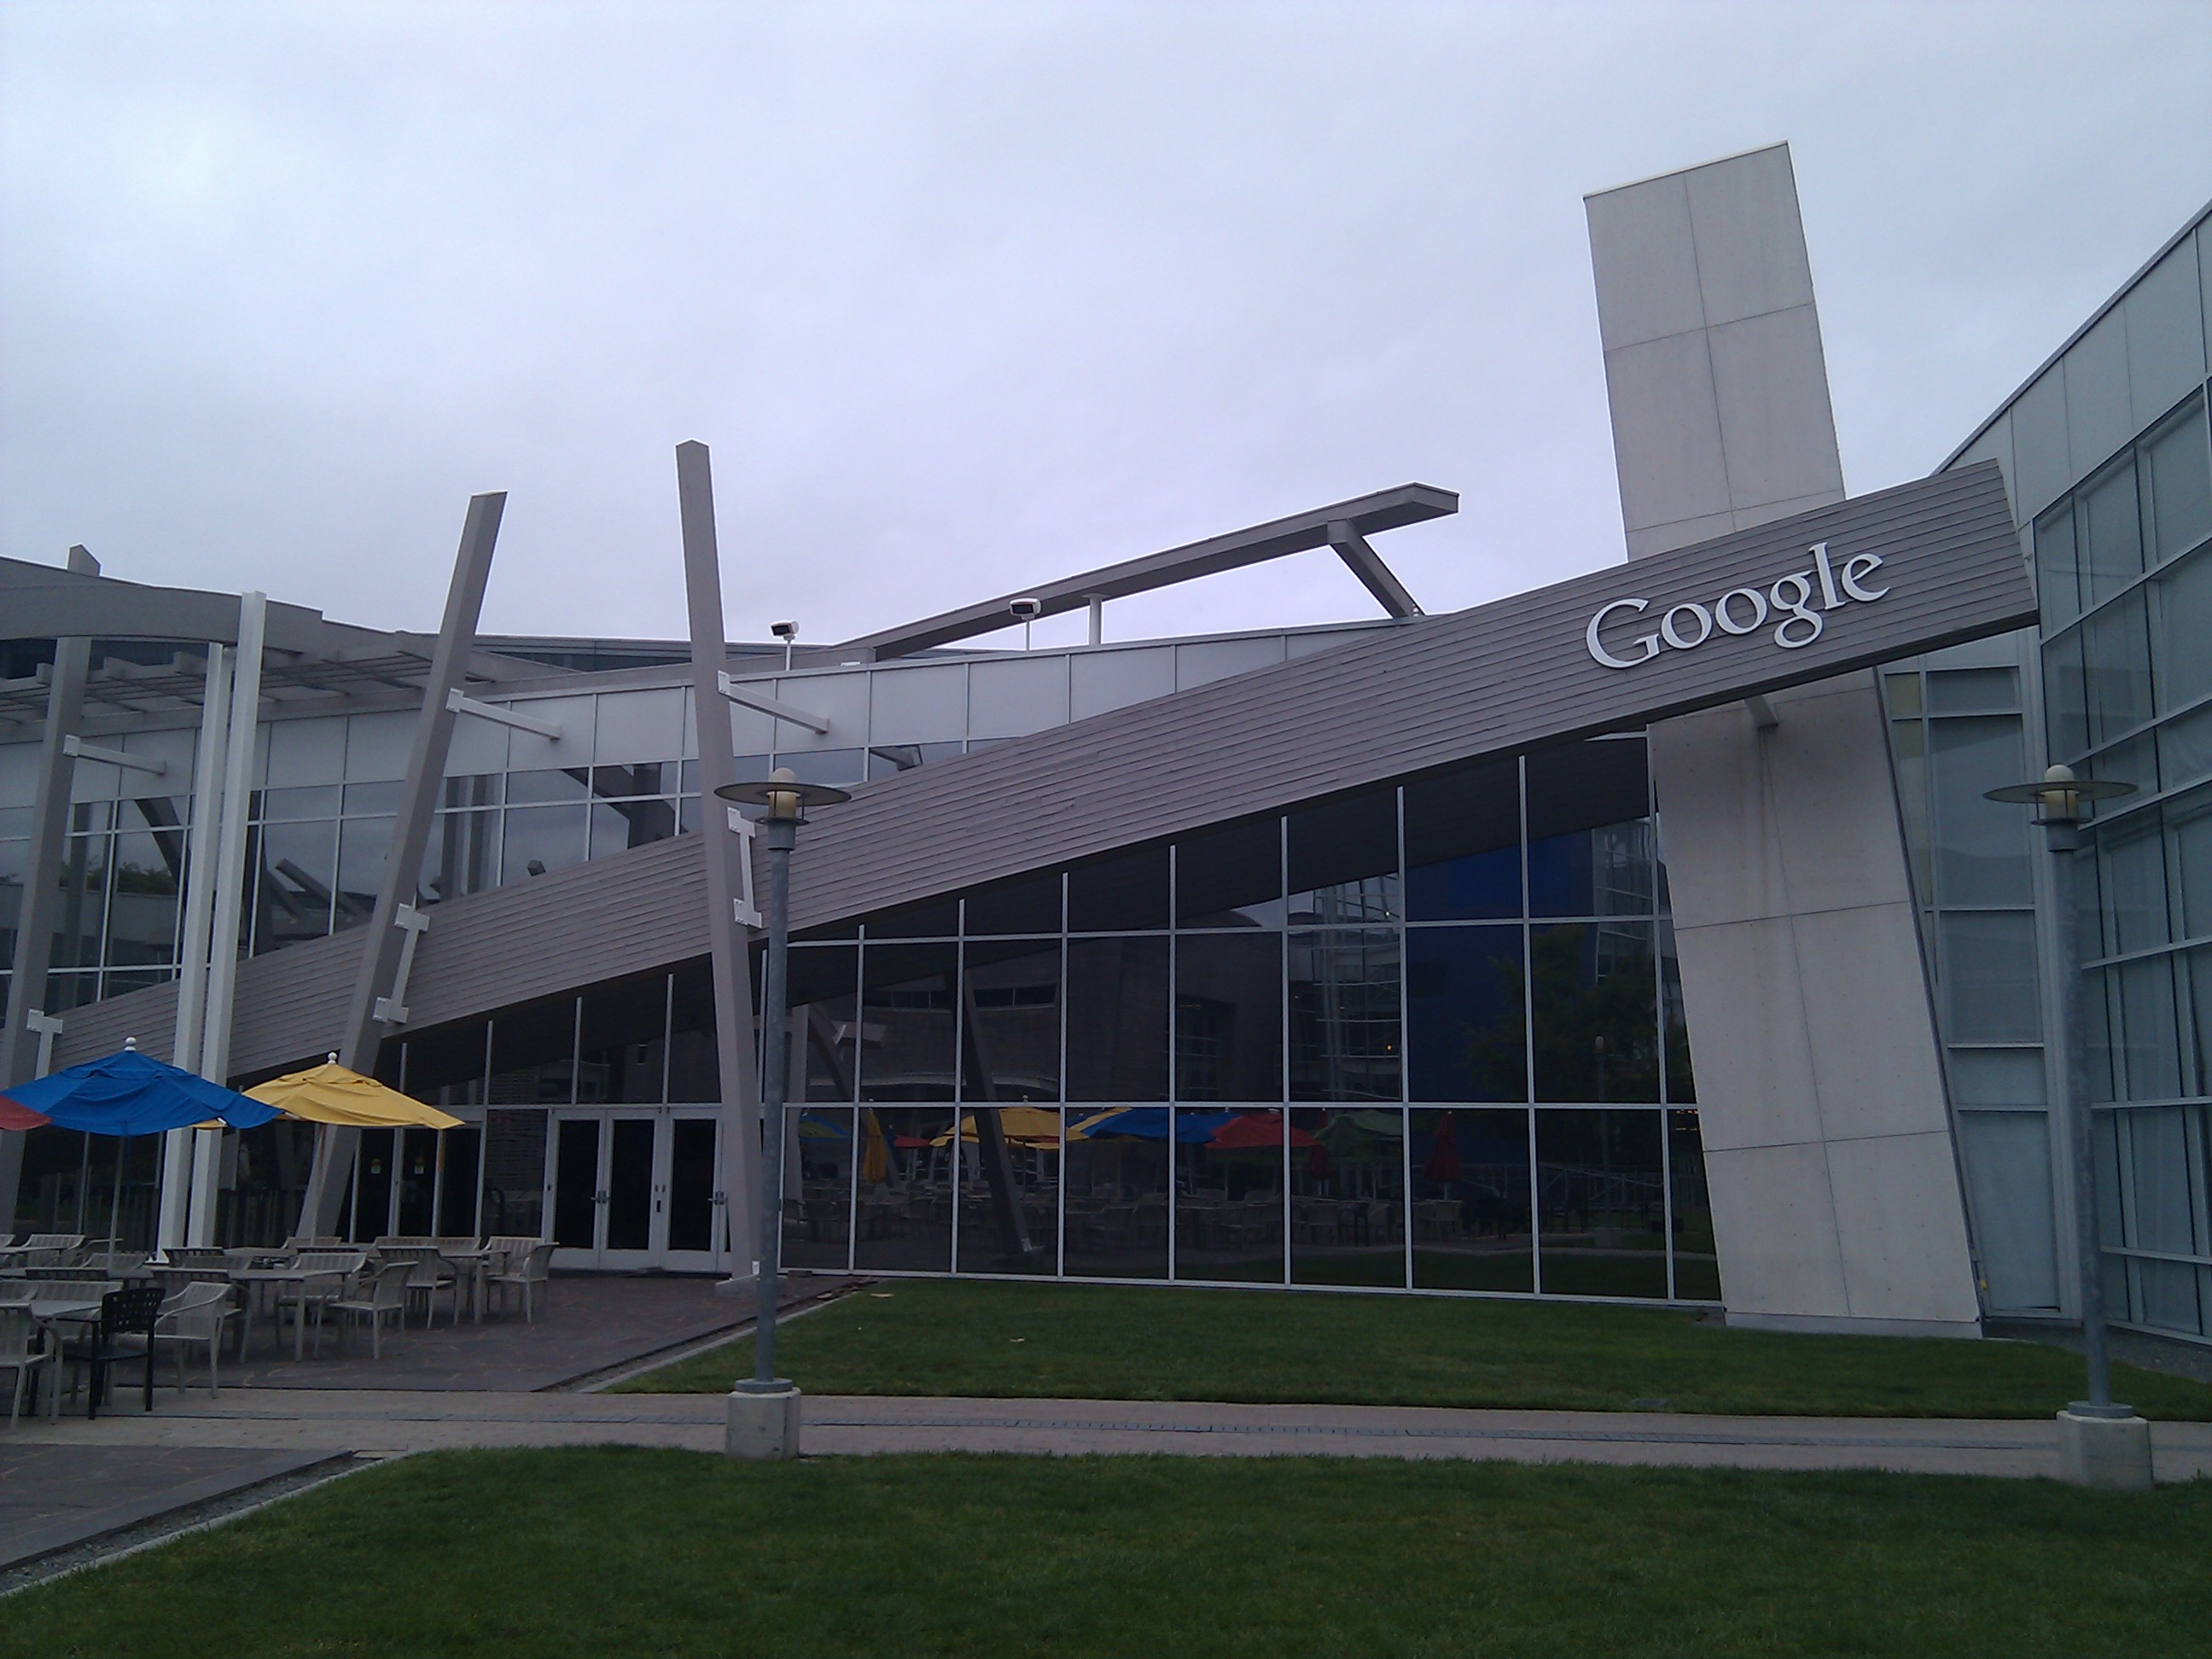 Google Building Stealthcopter